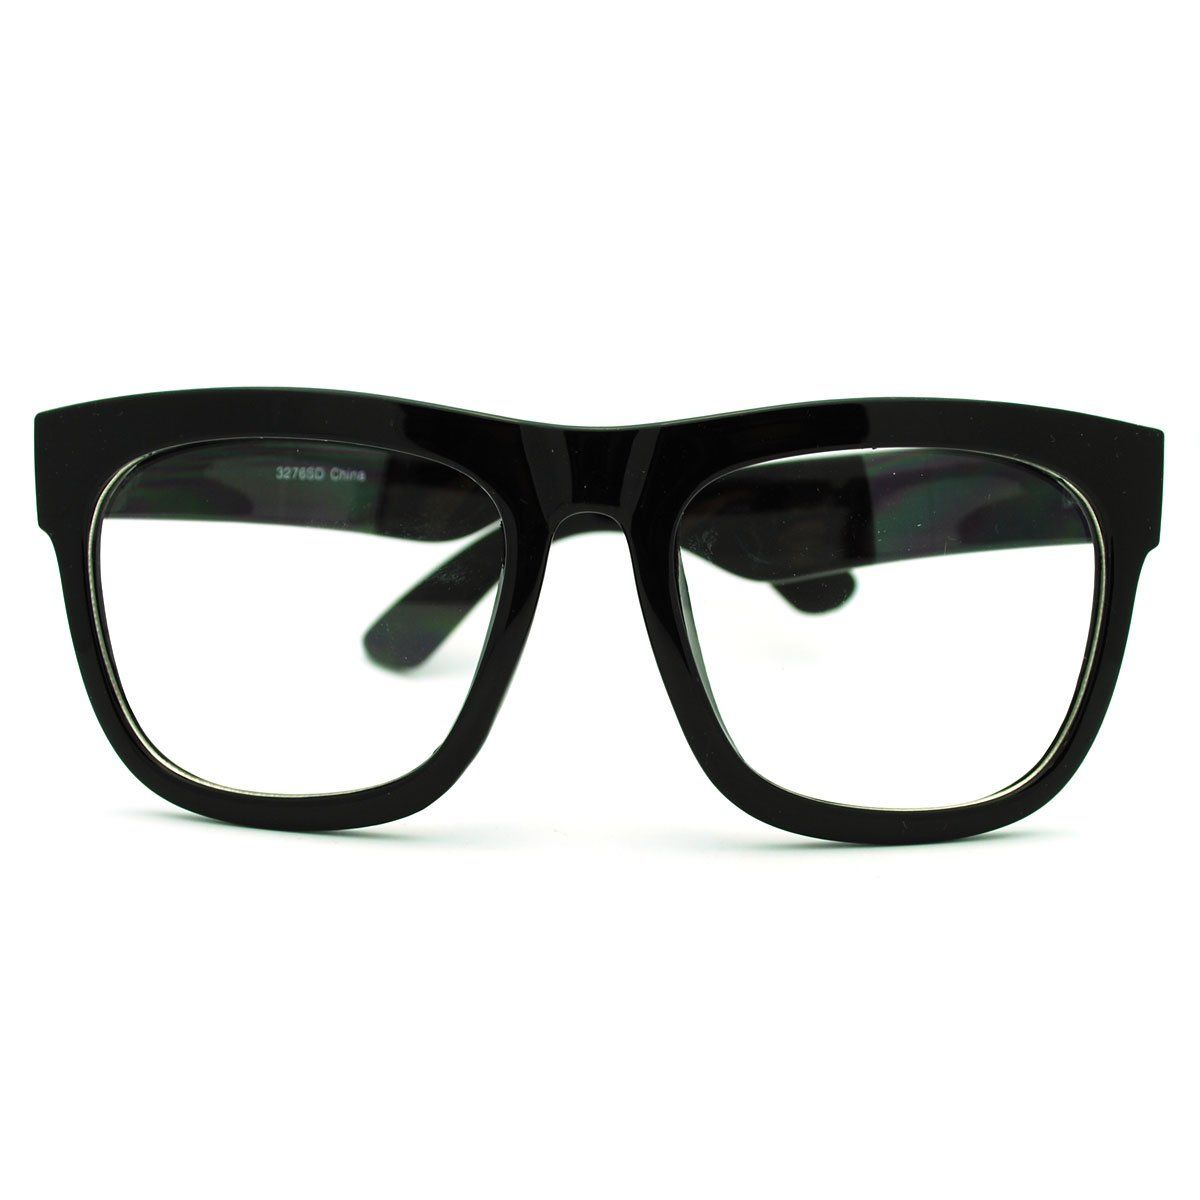 3a737436c Amazon.com: Black Oversized Wayfarer Square Glasses Thick Horn Rim Clear  Lens Frame: Clothing